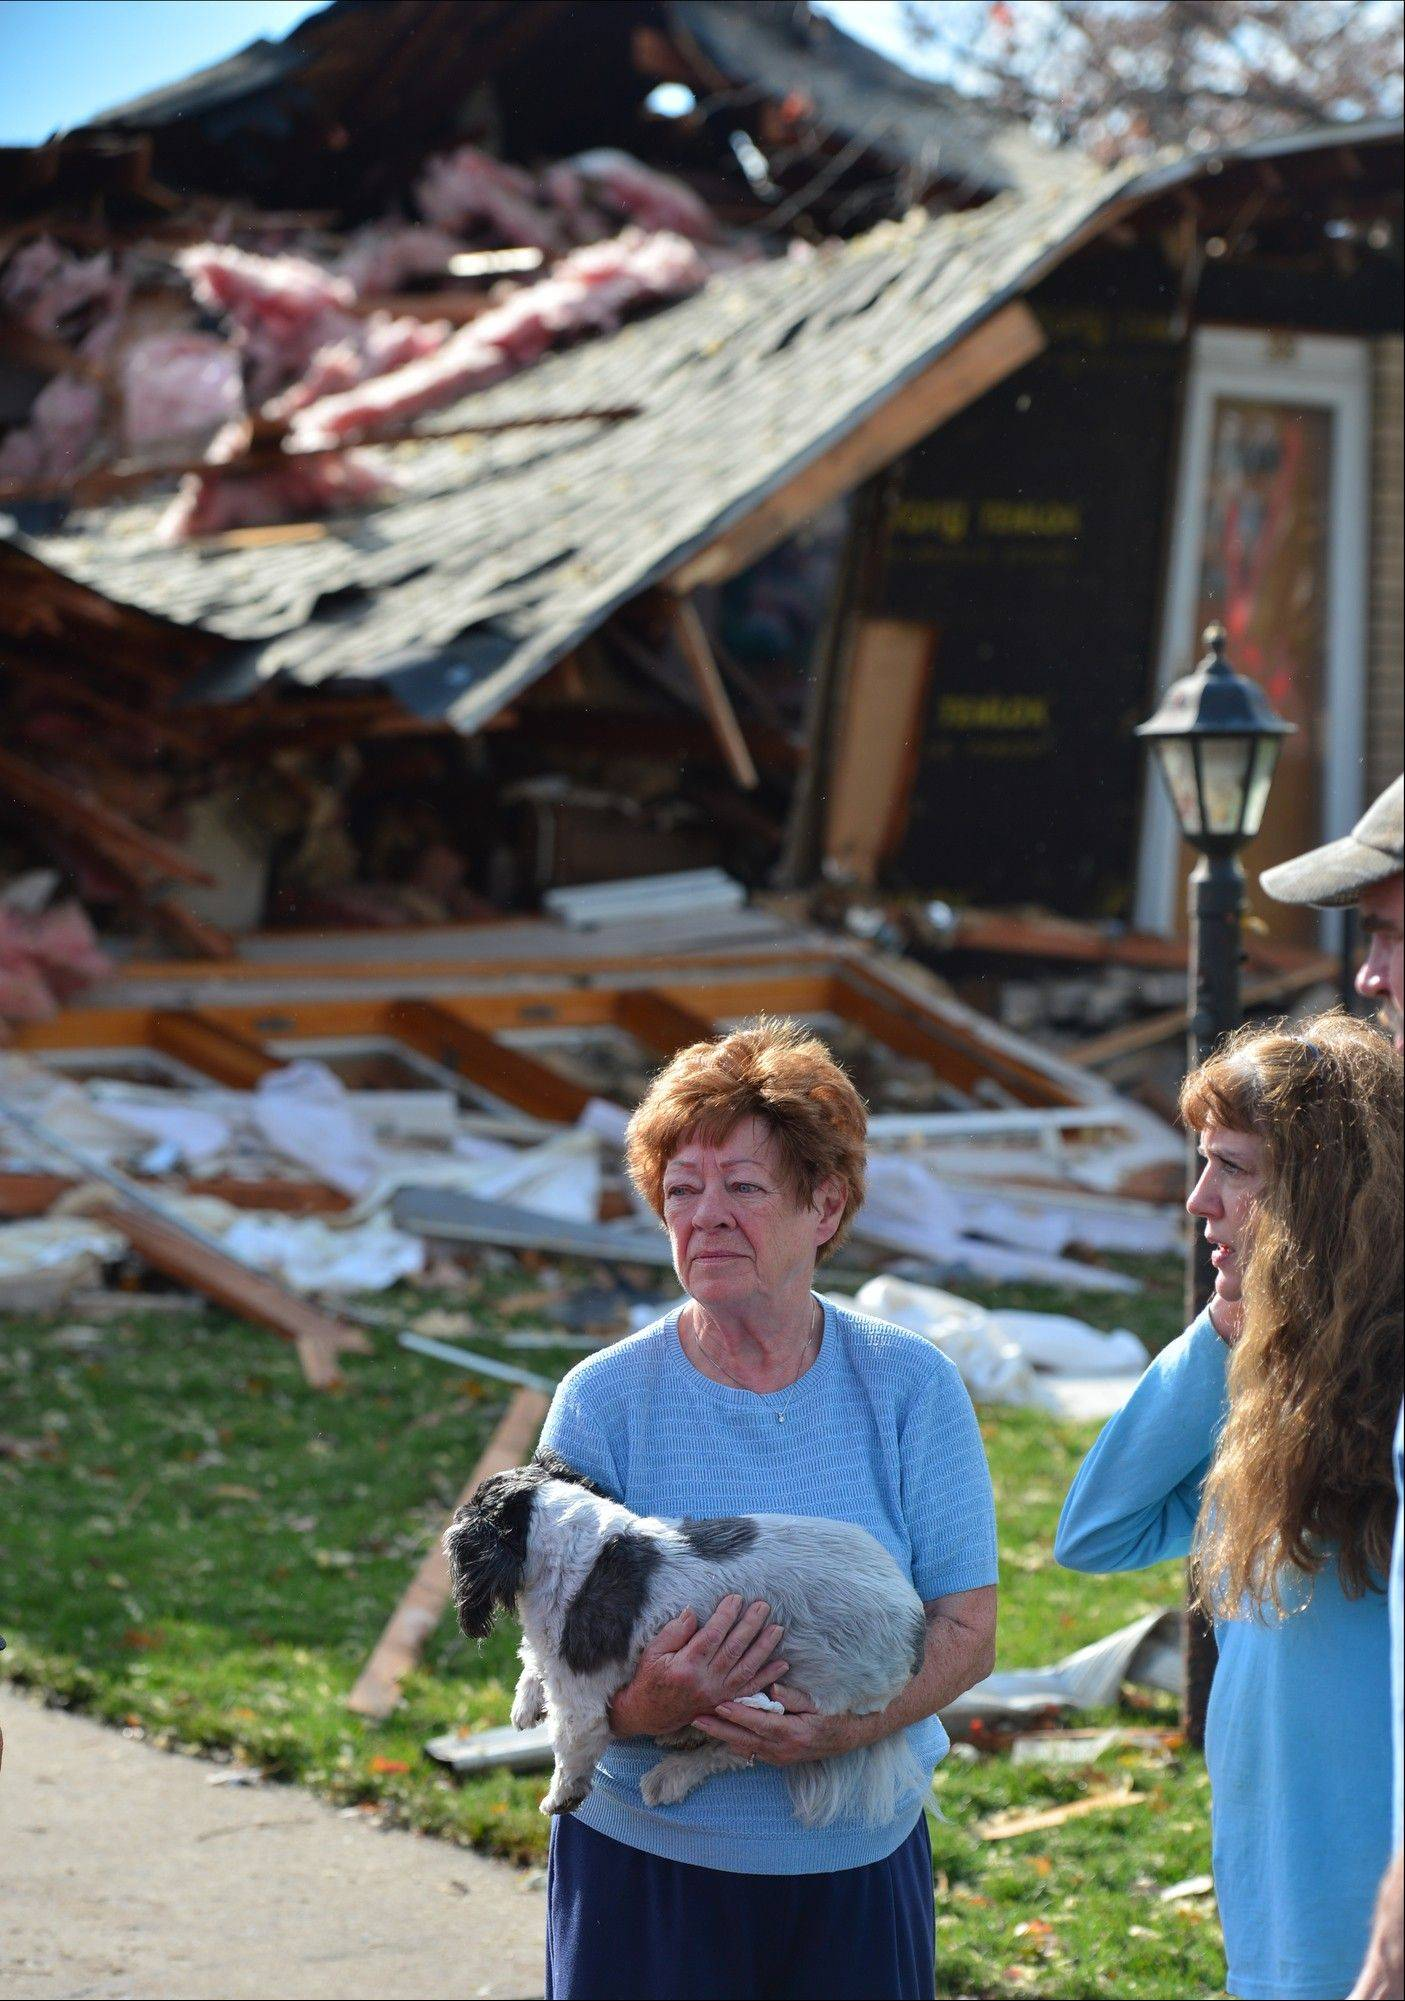 Shirley Wolf says she hung on to her dog Sammy for dear life as a tornado destroyed her home at 306 Delshire in Pekin, Il., Sunday, Nov. 17, 2013. Intense thunderstorms and tornadoes swept across the Midwest on Sunday, causing extensive damage in several central Illinois communities while sending people to their basements for shelter.